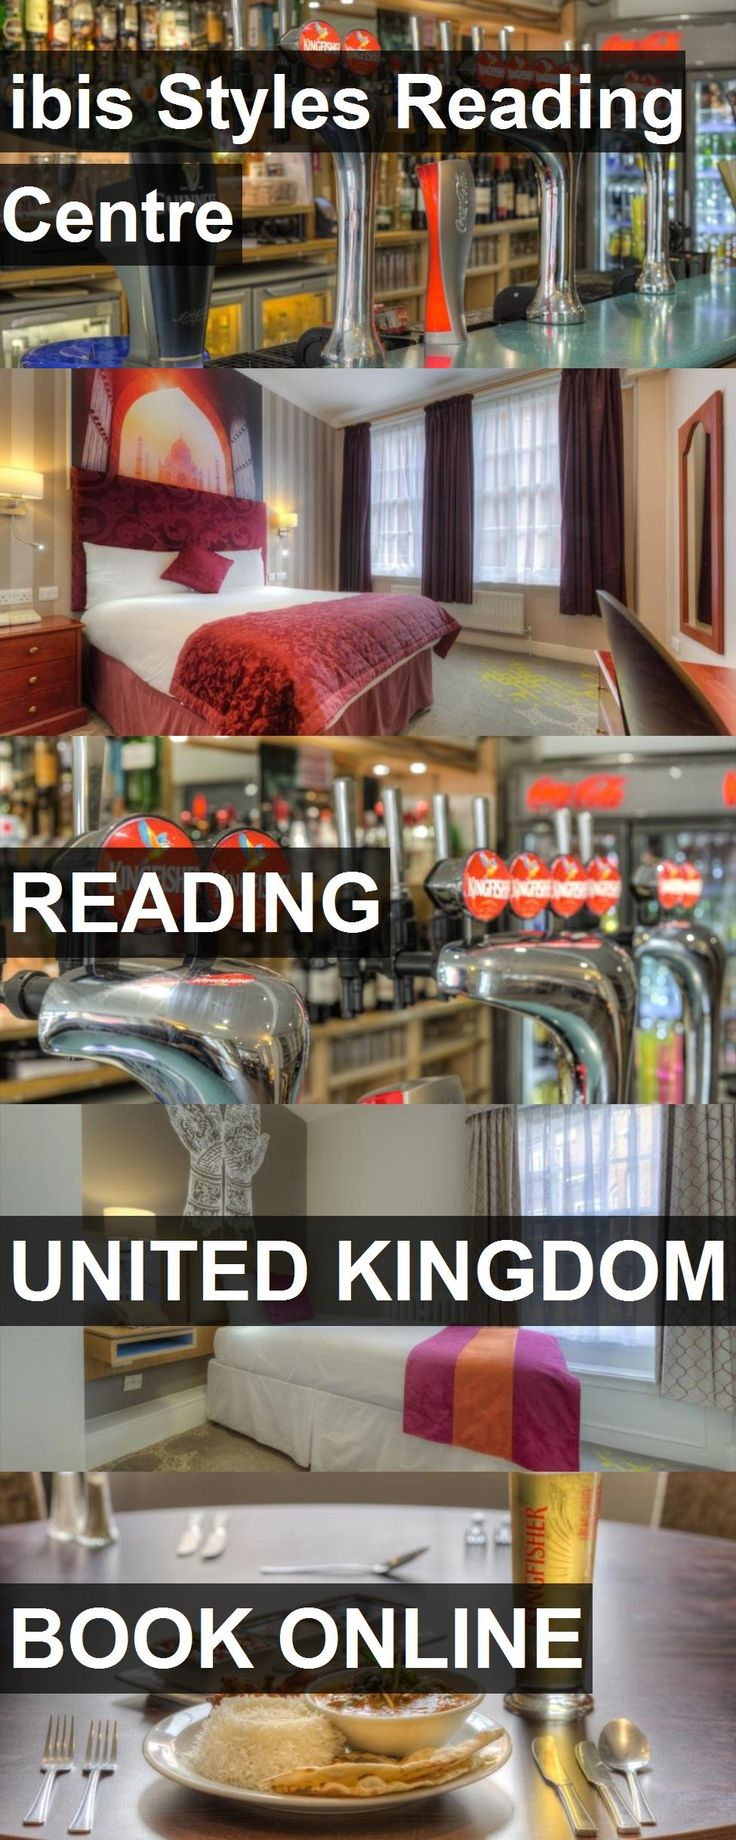 Hotel ibis Styles Reading Centre in Reading, United Kingdom. For more information, photos, reviews and best prices please follow the link. #UnitedKingdom #Reading #travel #vacation #hotel